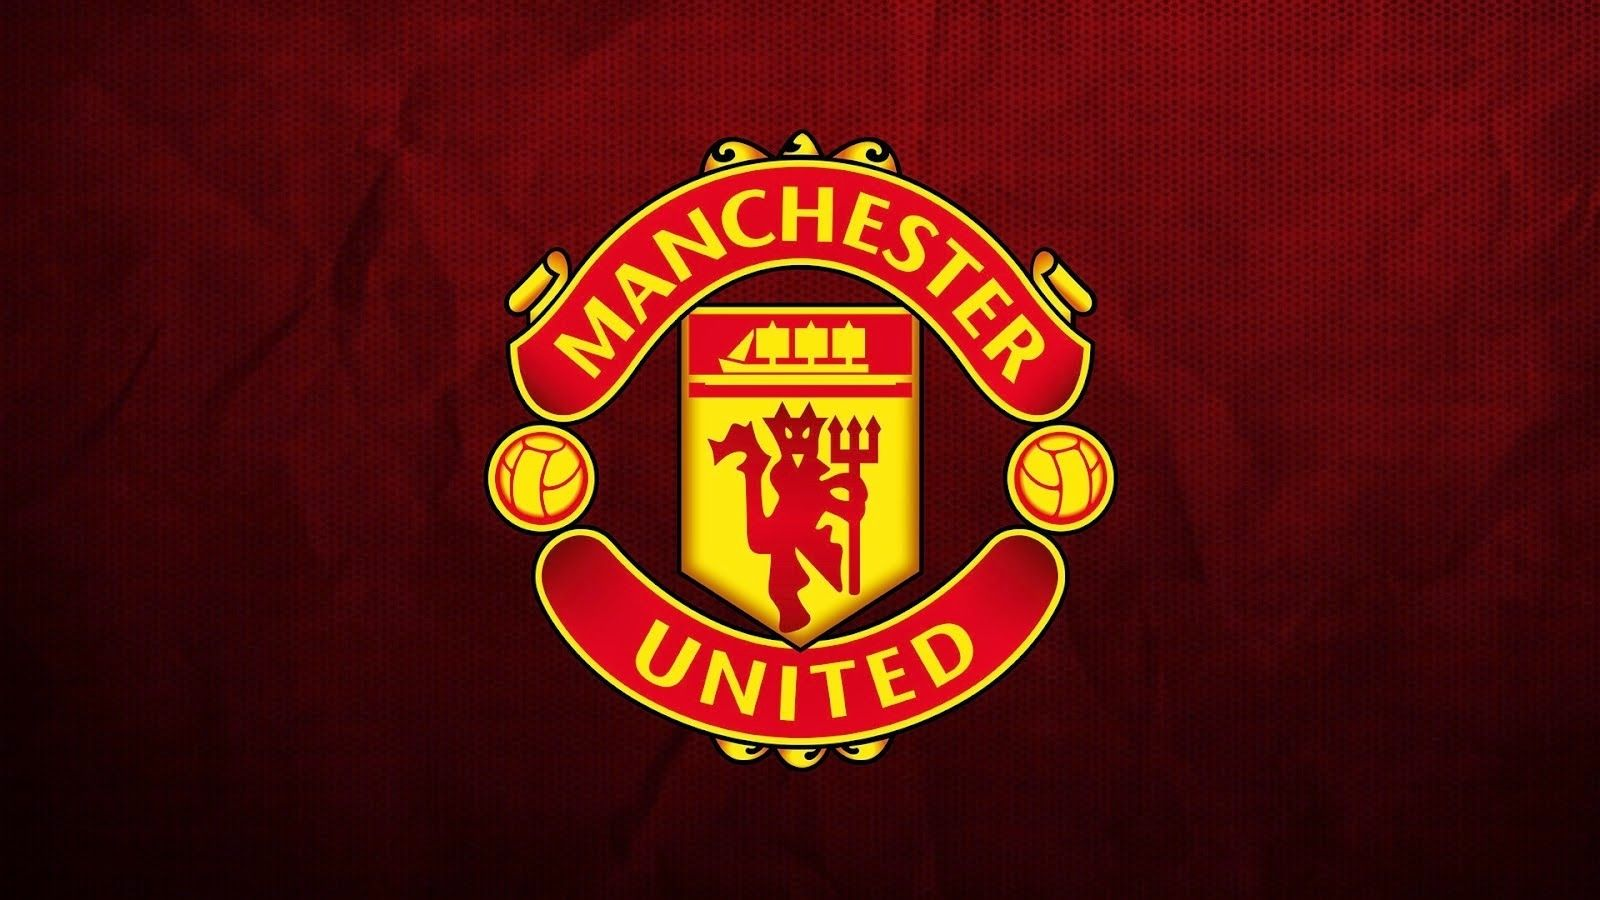 10 Best Man United Hd Wallpapers Full Hd 1080p For Pc Background Manchester United Wallpaper Manchester United Logo Manchester United Football Club